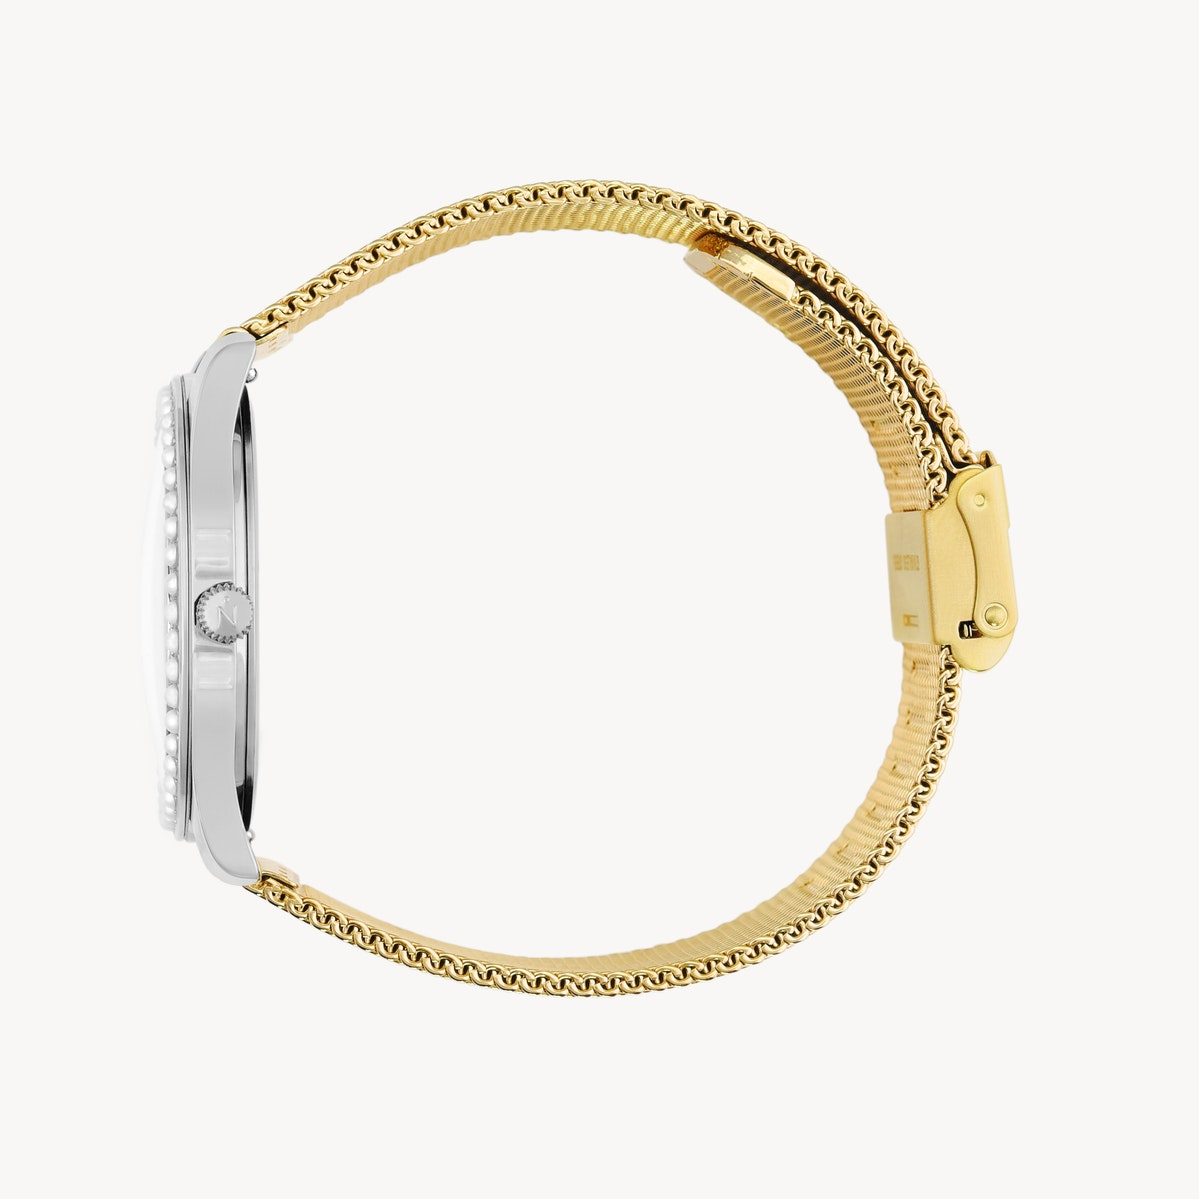 Lune 48 - Stainless Steel - Gold Mesh